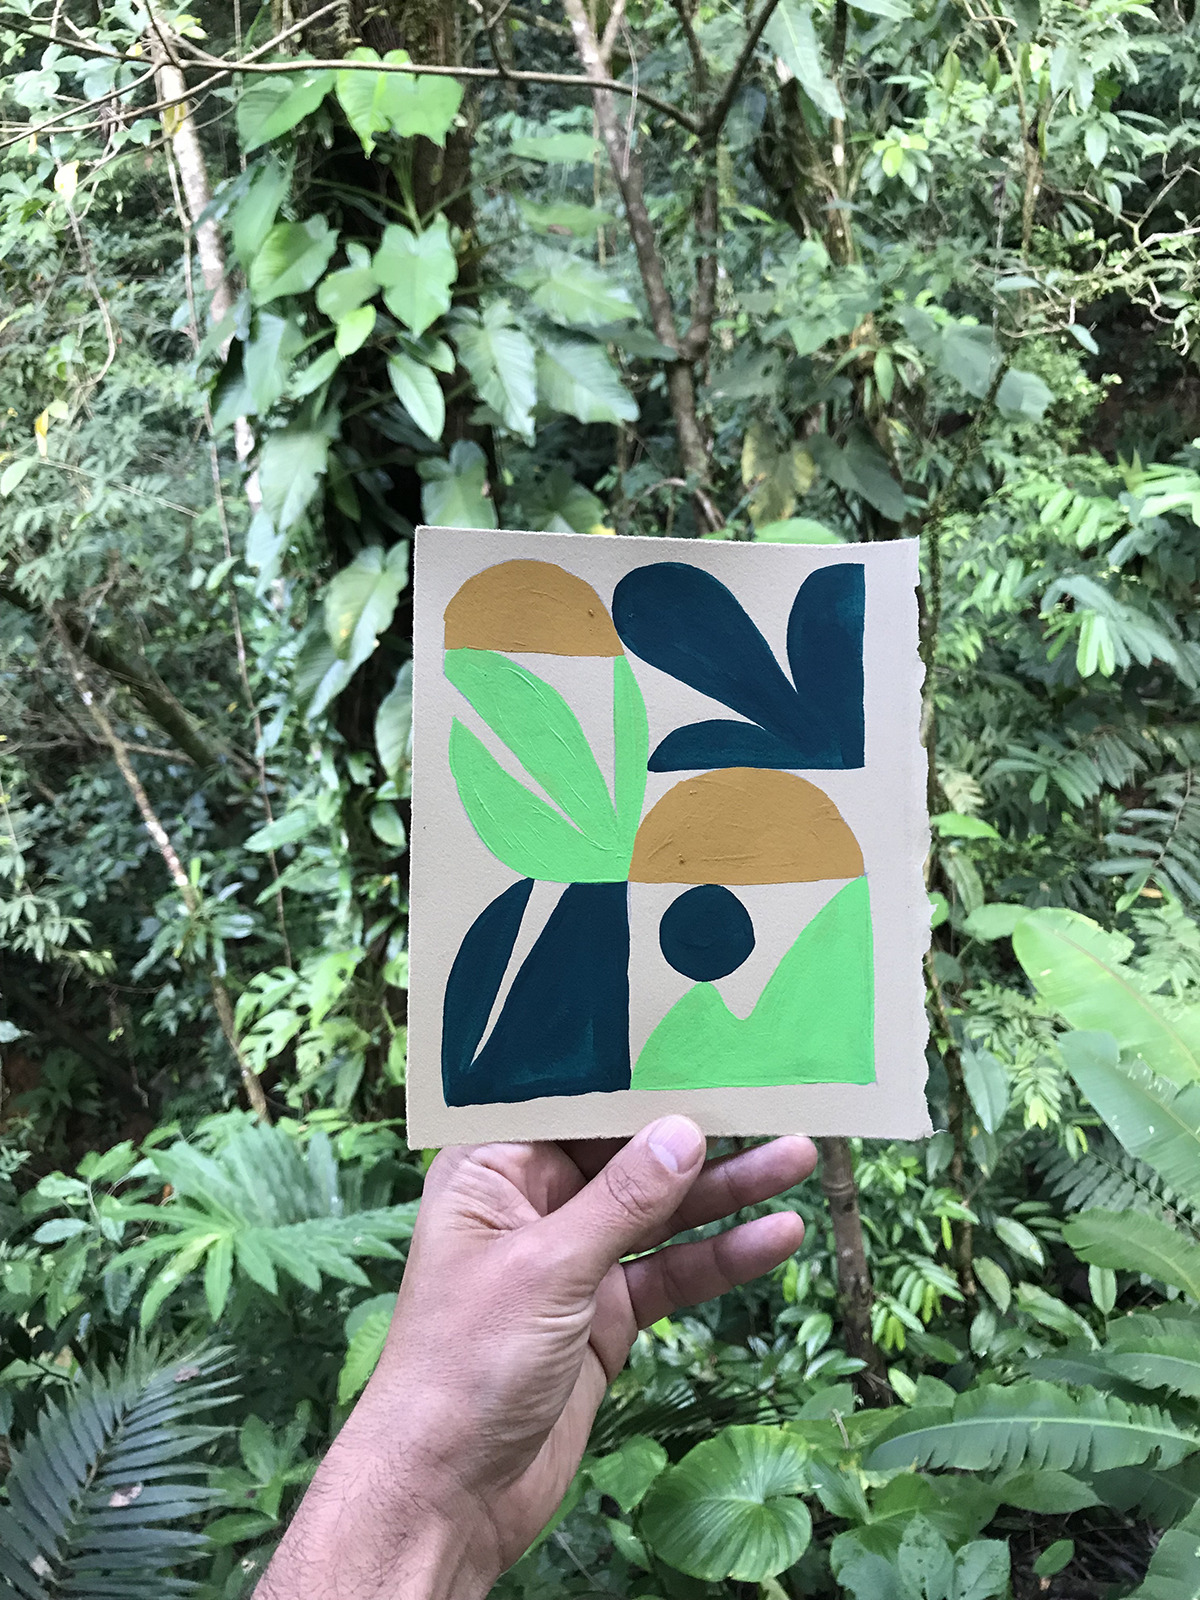 Study made by Cody Hudson during Jaunt #50, Costa Rica January 2019